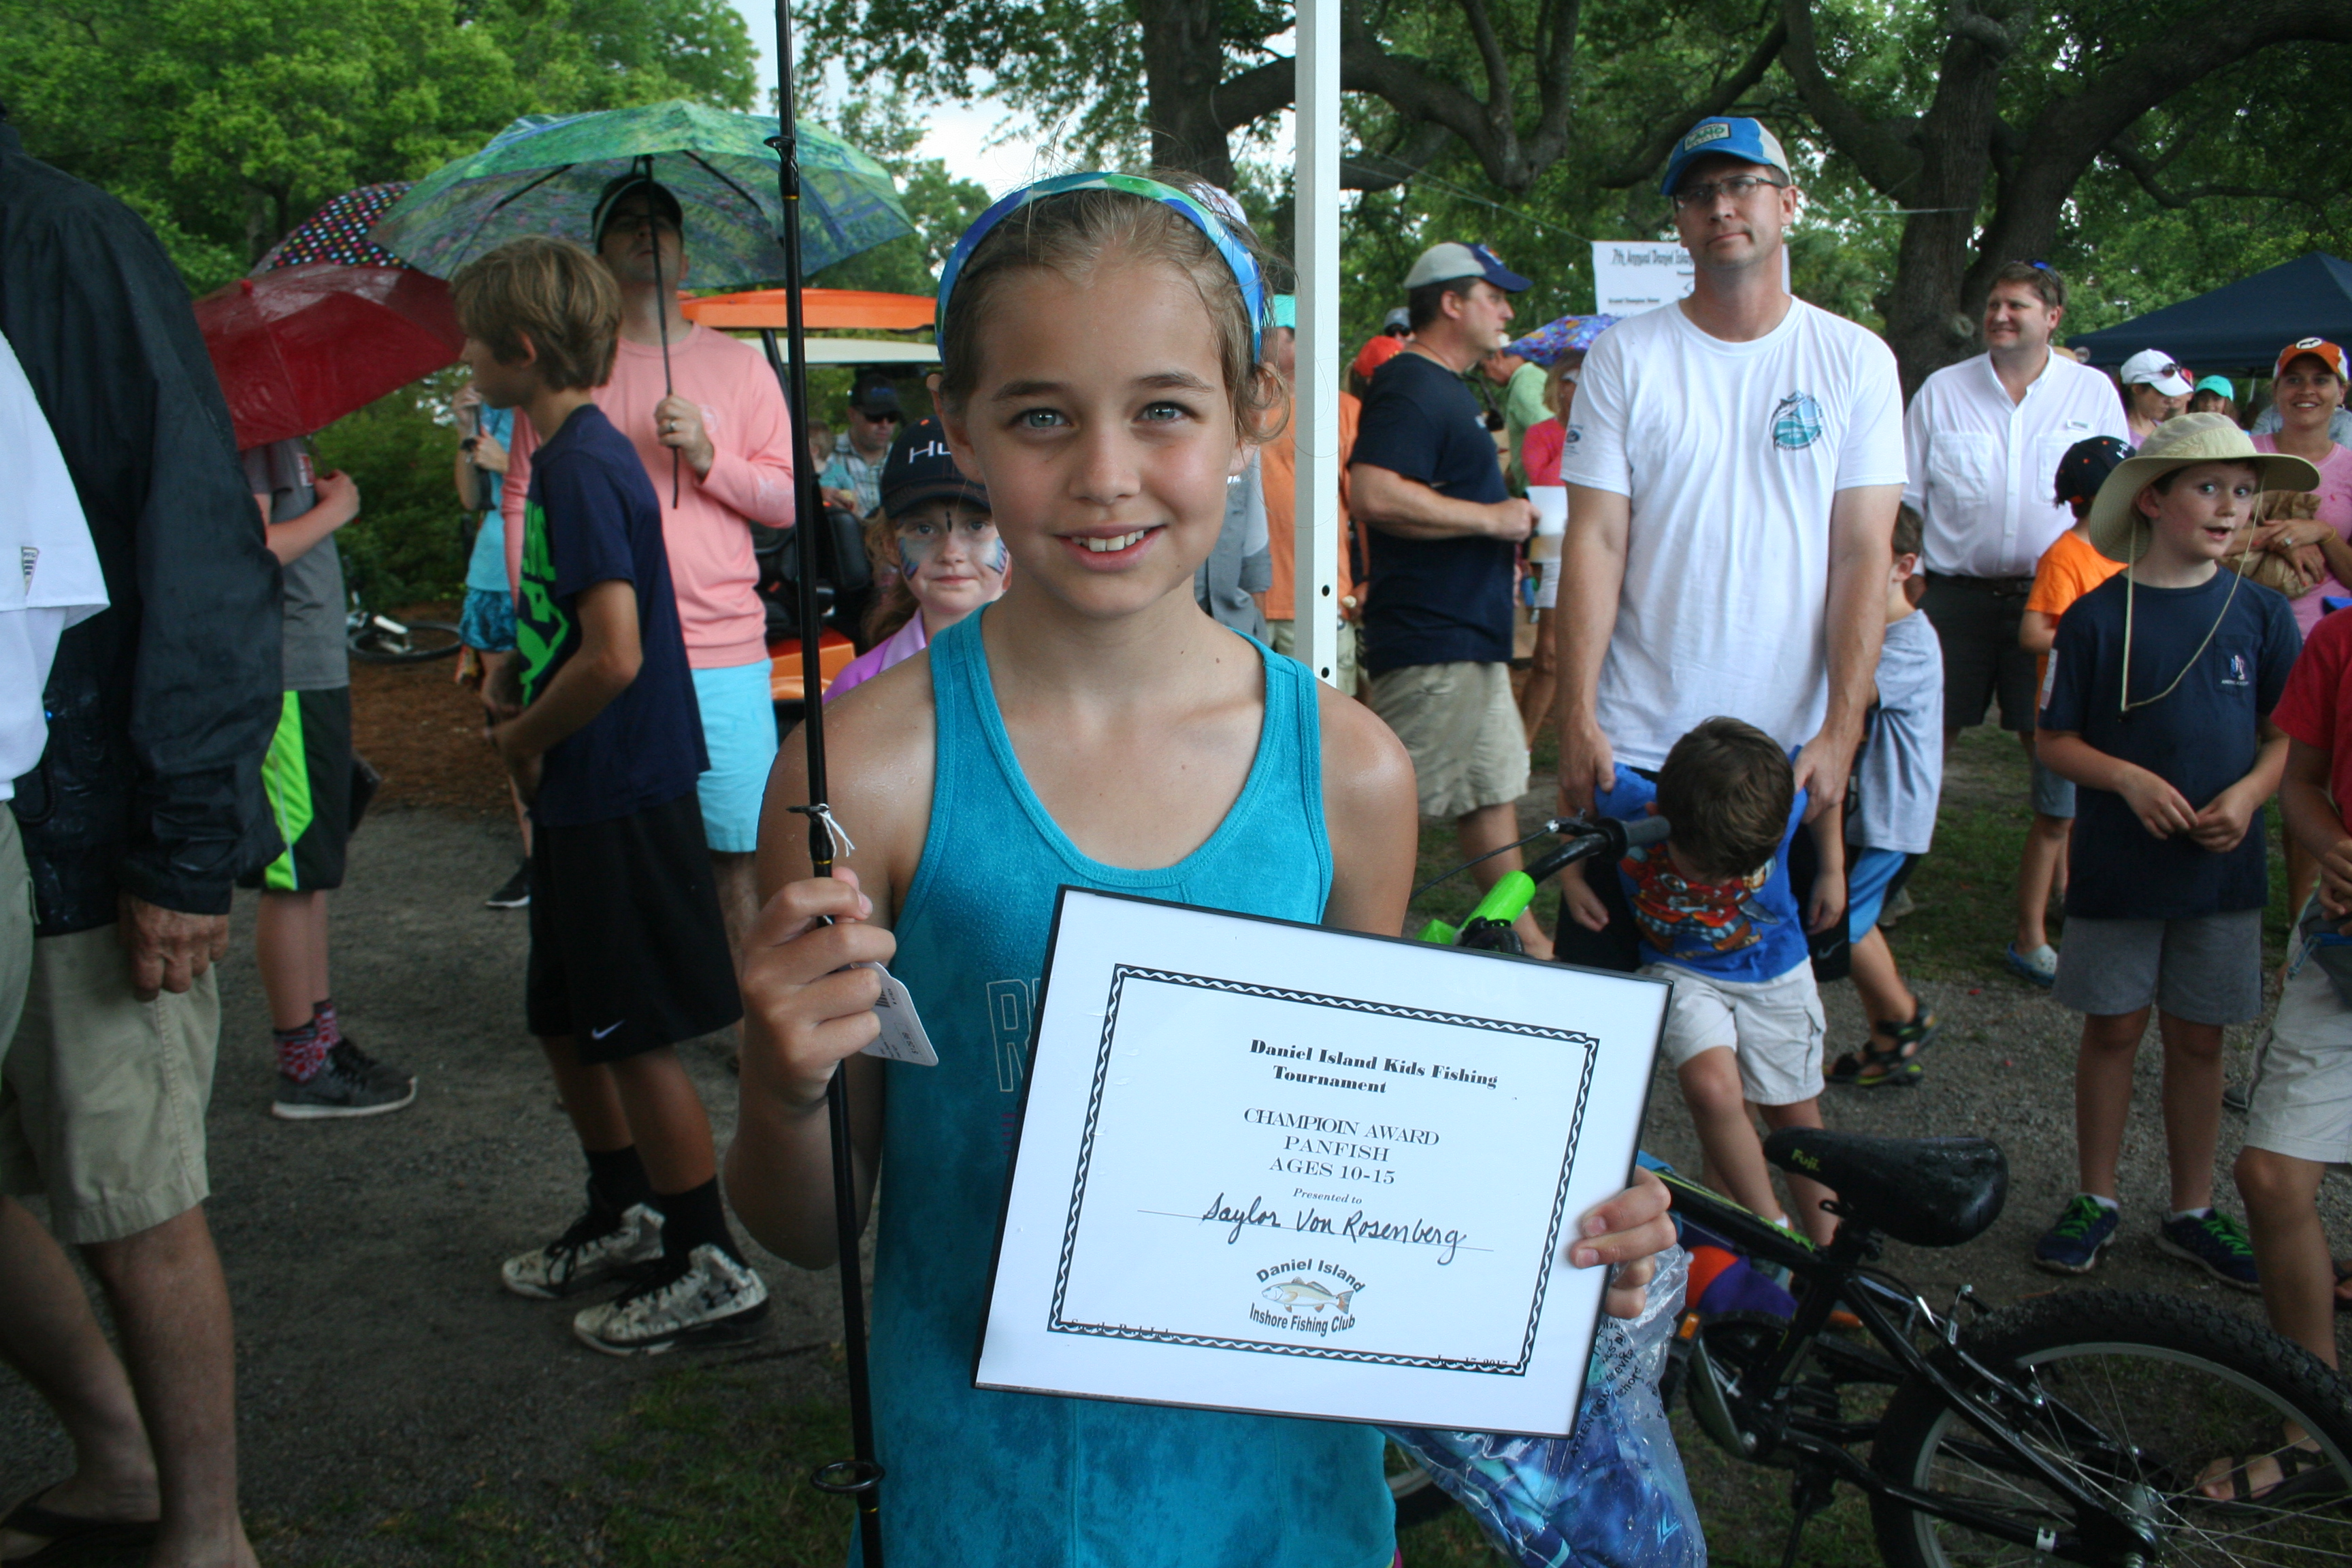 In the Panfish 10-15 year old category, the Champion Award was earned by Saylor Von Rosenberg, who caught an 8.5 inch Panfish. The first runner up was Reed Von Rosenberg and the second runner up was Emi Grace Lagadinos.